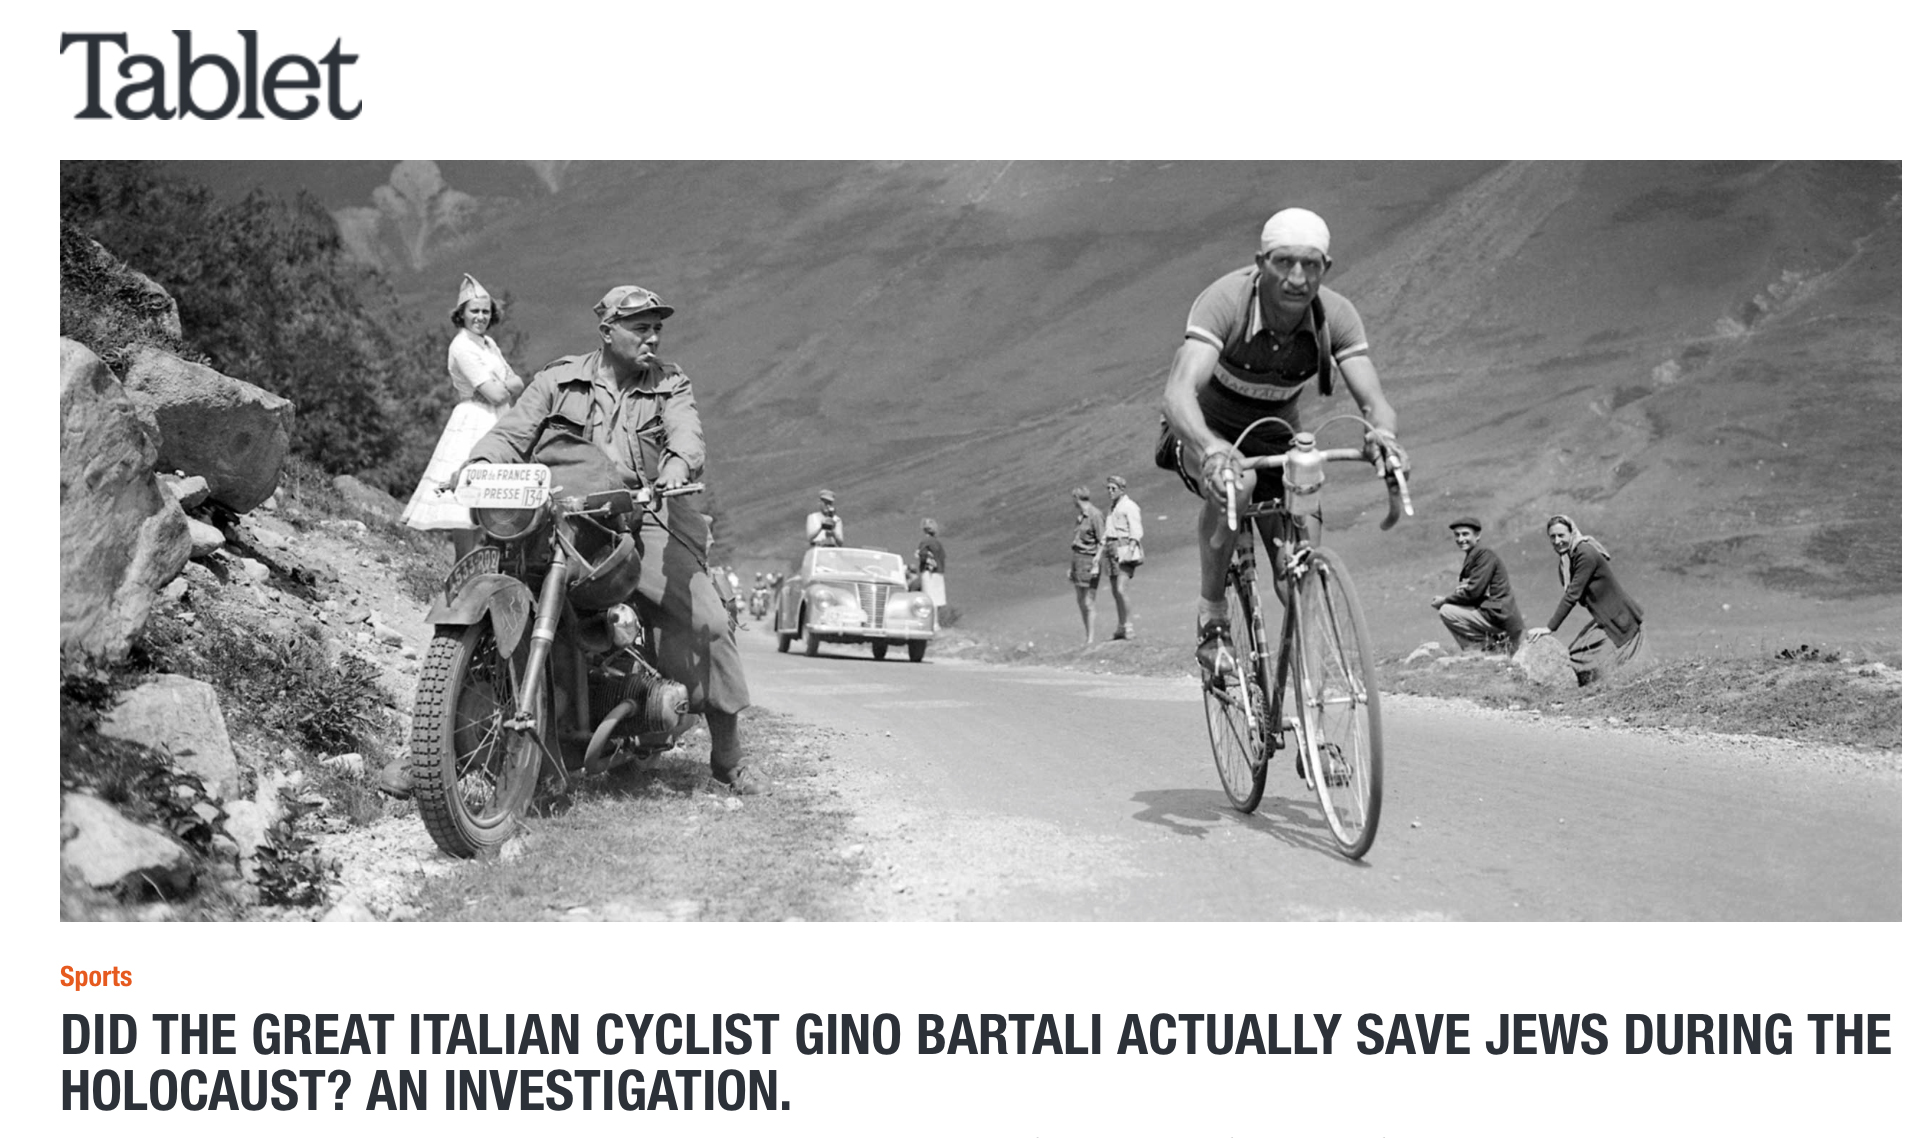 Tablet Magazine: Did Gino Bartali Actually Save Jews? An Investigation.